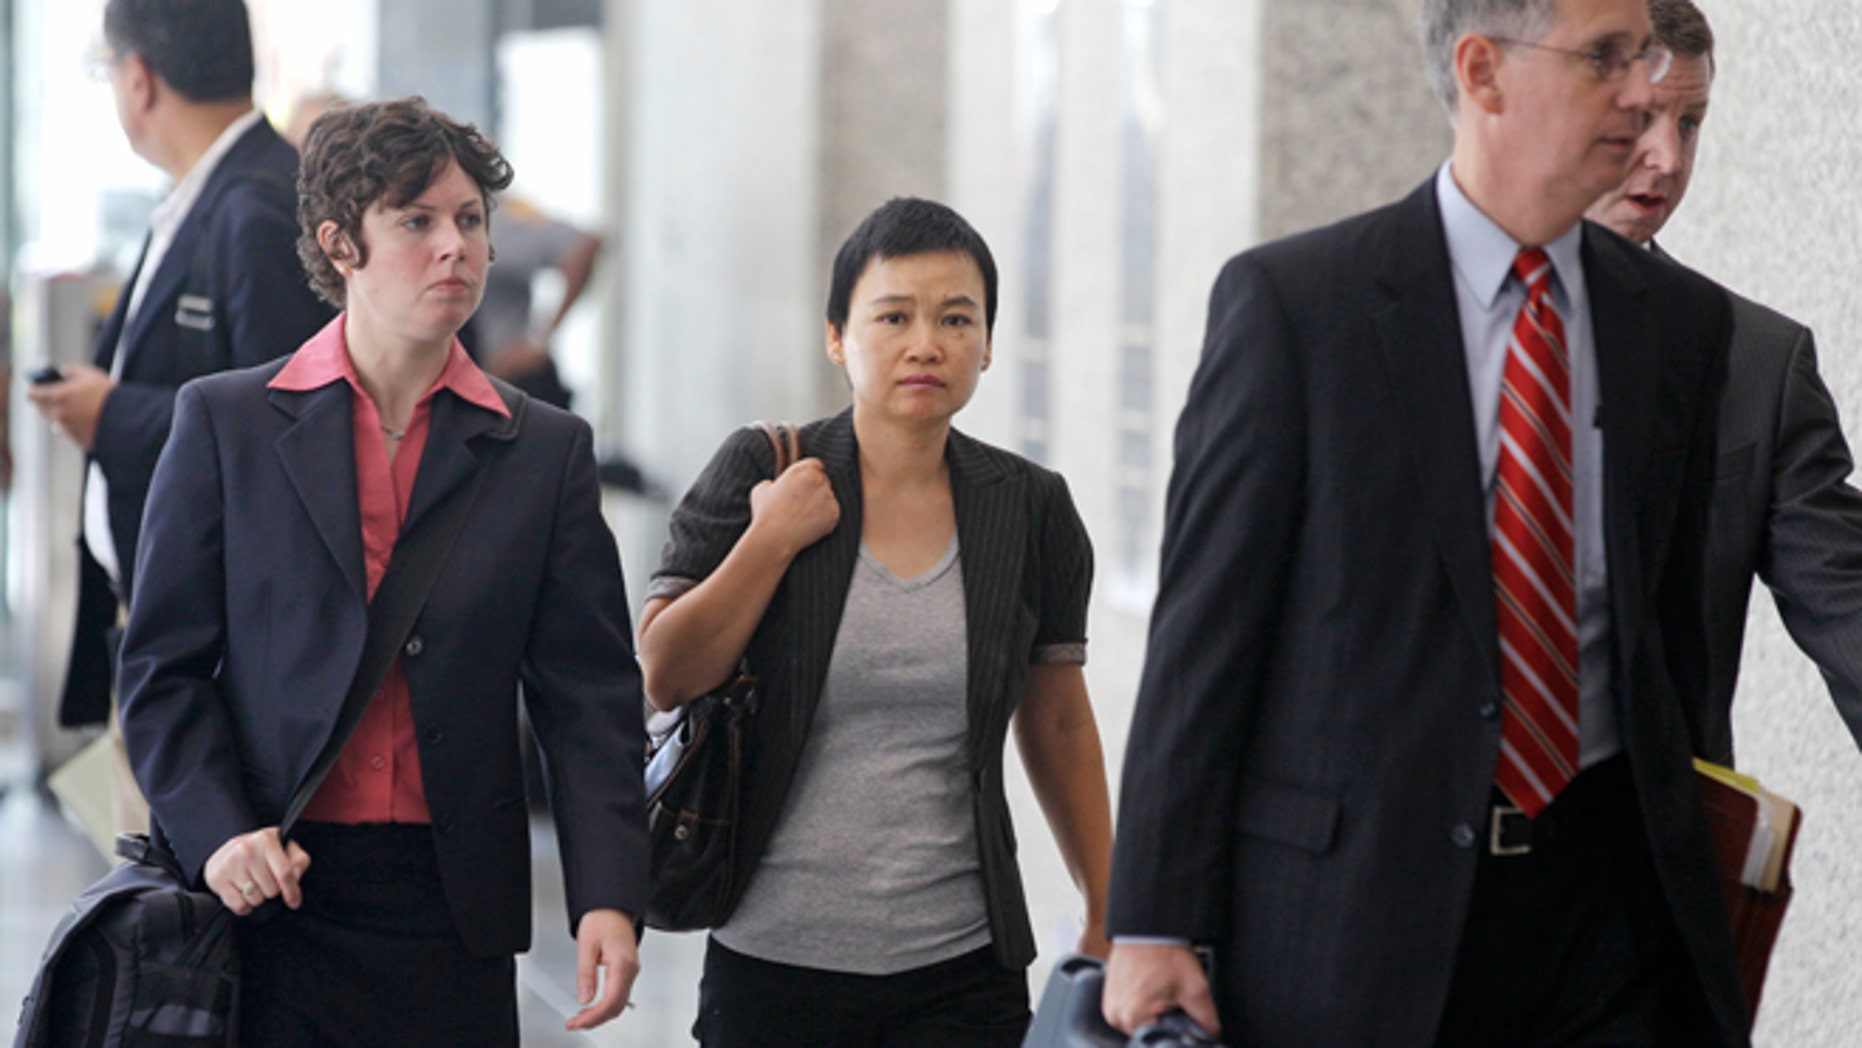 Aug. 29, 2012: Hanjuan Jin, center, leaves a federal courthouse in Chicago after being sentenced to four years in prison for stealing trade secrets from Motorola.